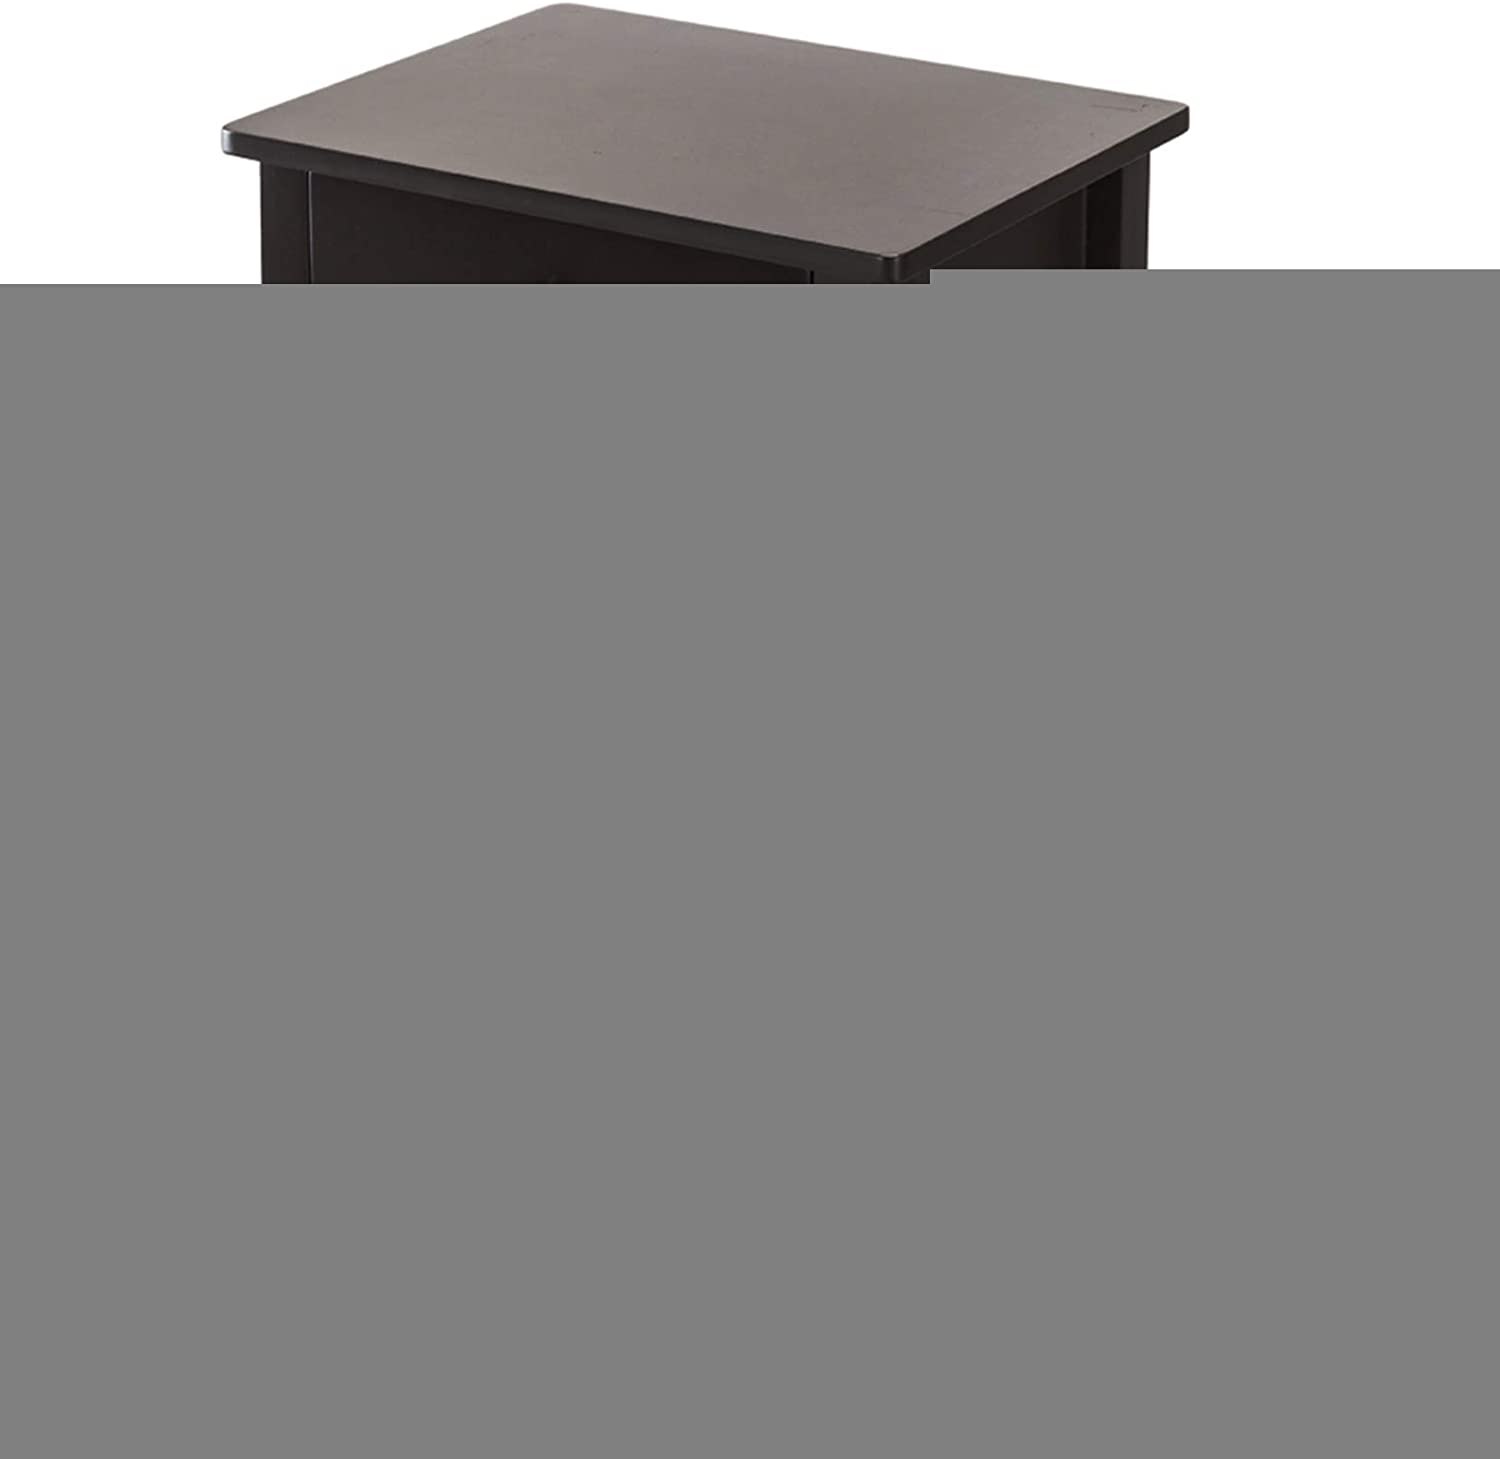 2-Layer Bedside Table Coffee Table with Drawer Coffee - Simplistic End Table Corner Shelves for Studio, Home Living Room Bedroom